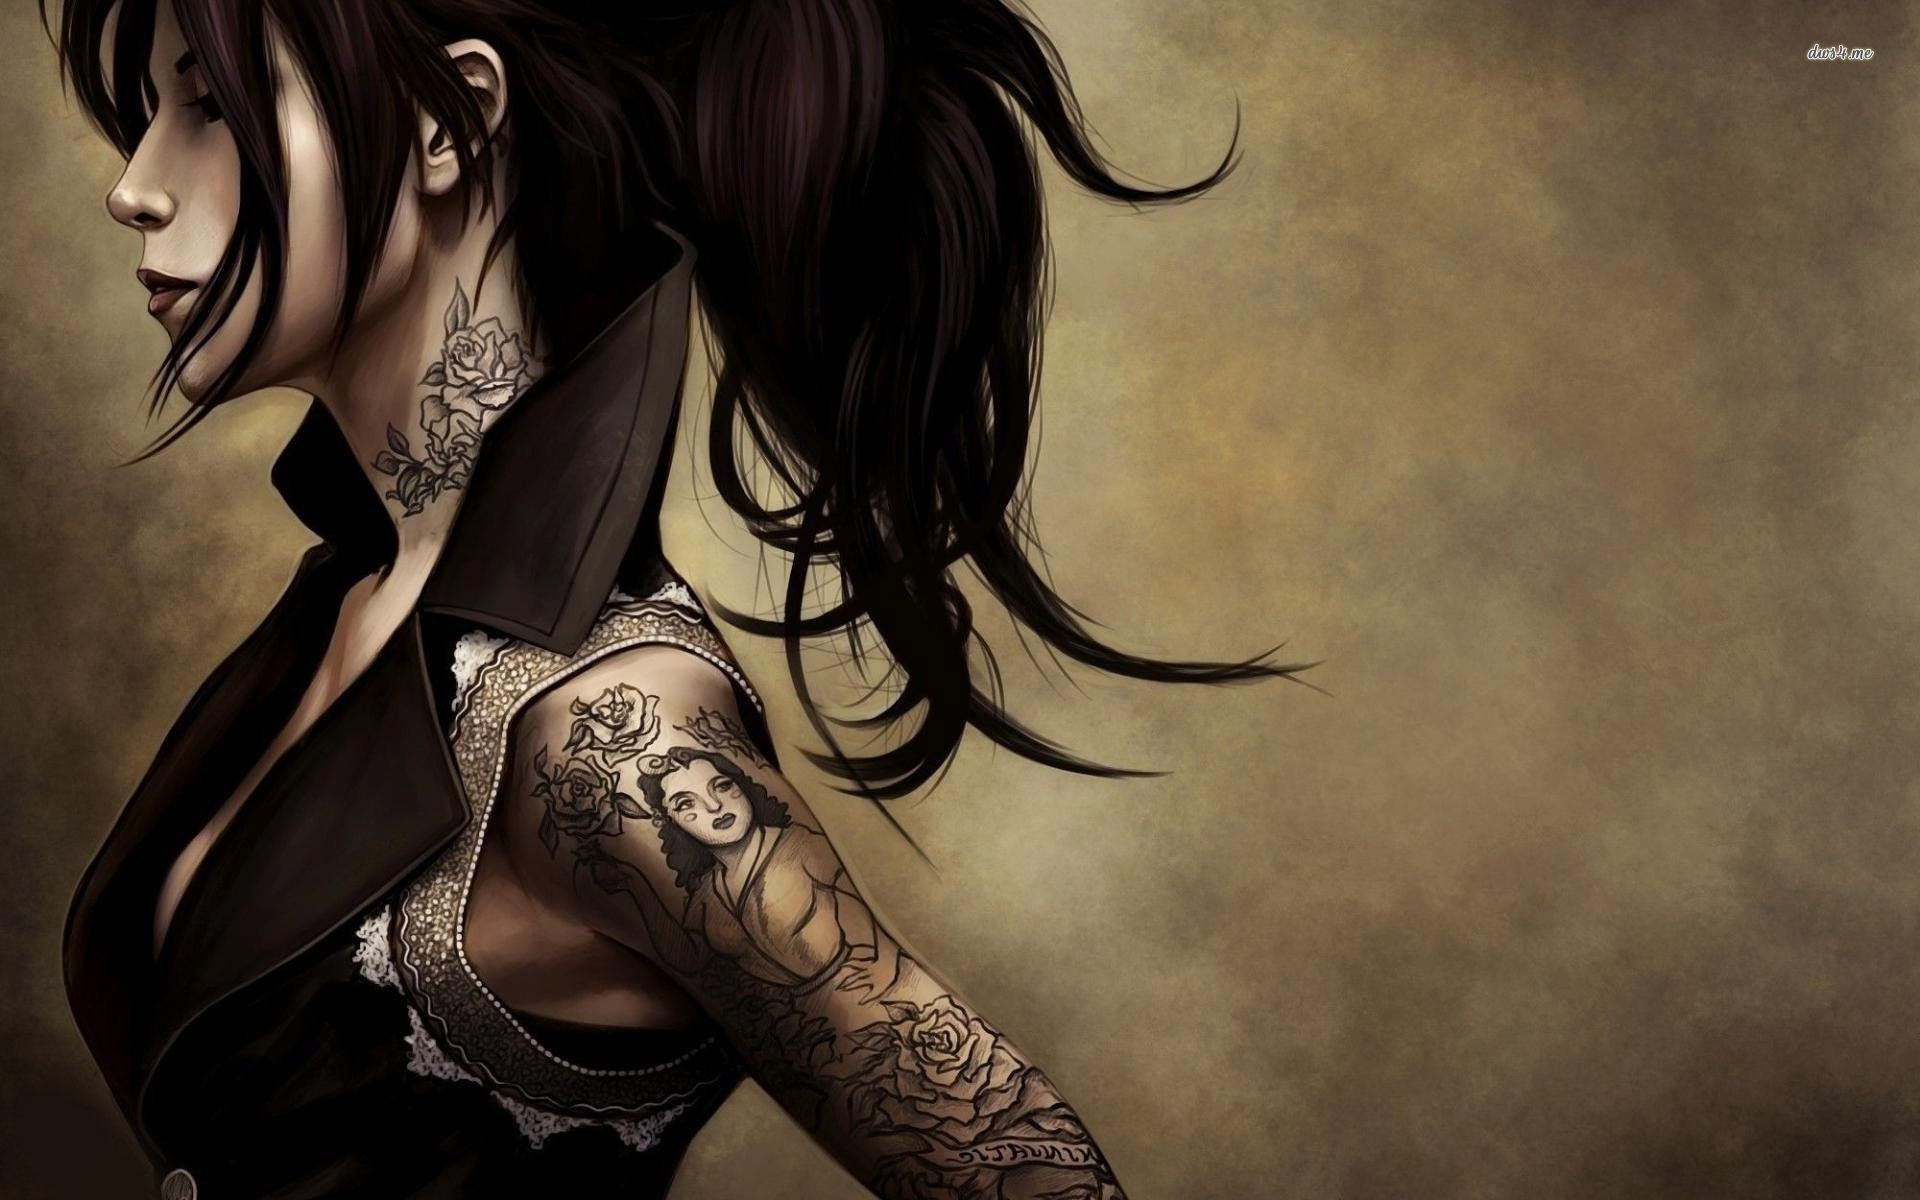 Res: 1920x1200, Tattoo Girl Wallpaper 1920×1200 Tattooed Women Wallpapers (41 Wallpapers) |  Adorable Wallpapers